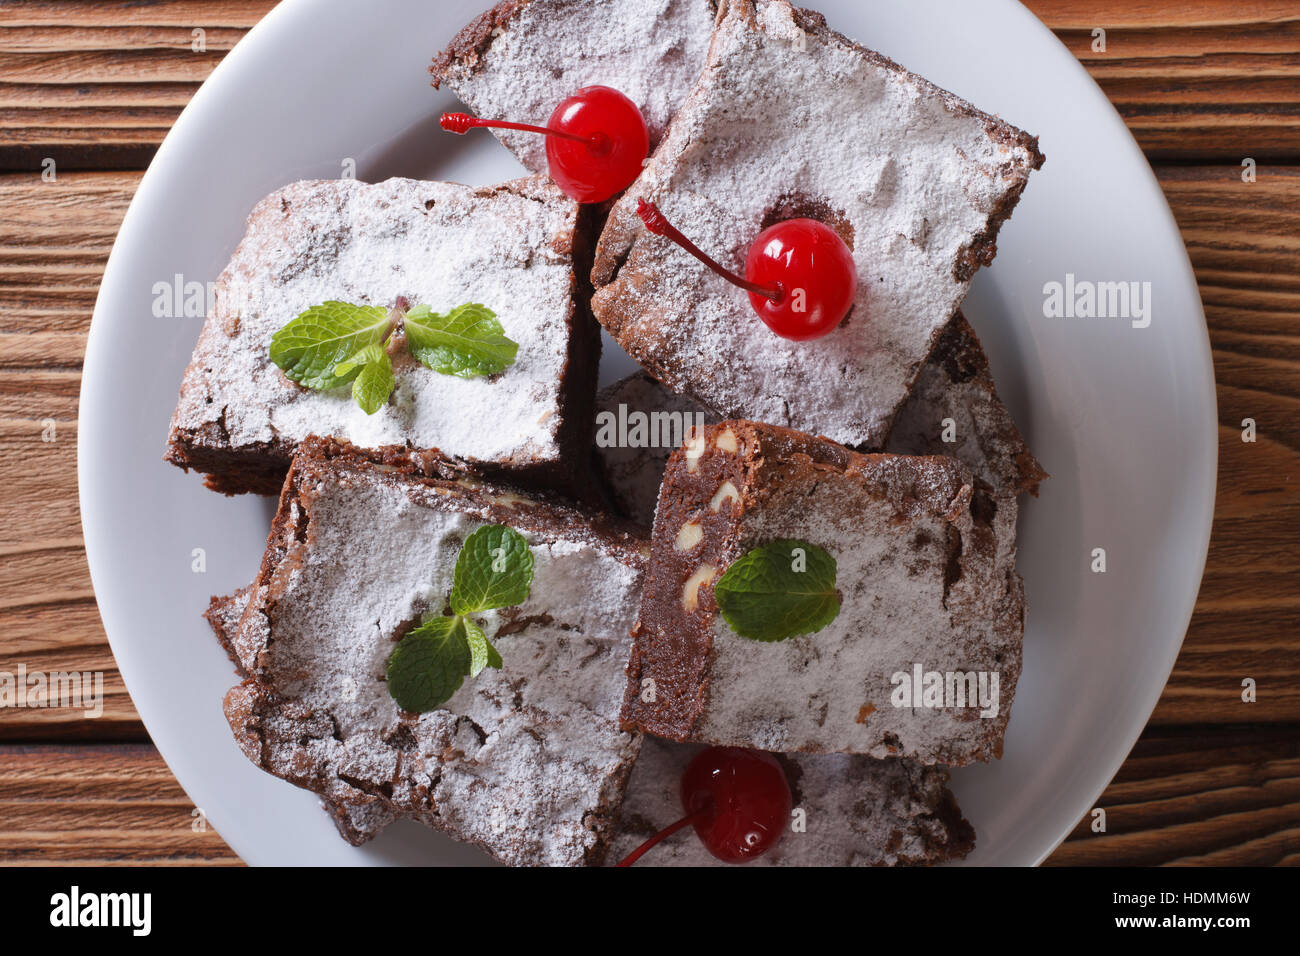 chocolate cake brownies with mint and cherries on a white plate. horizontal top view close-up - Stock Image